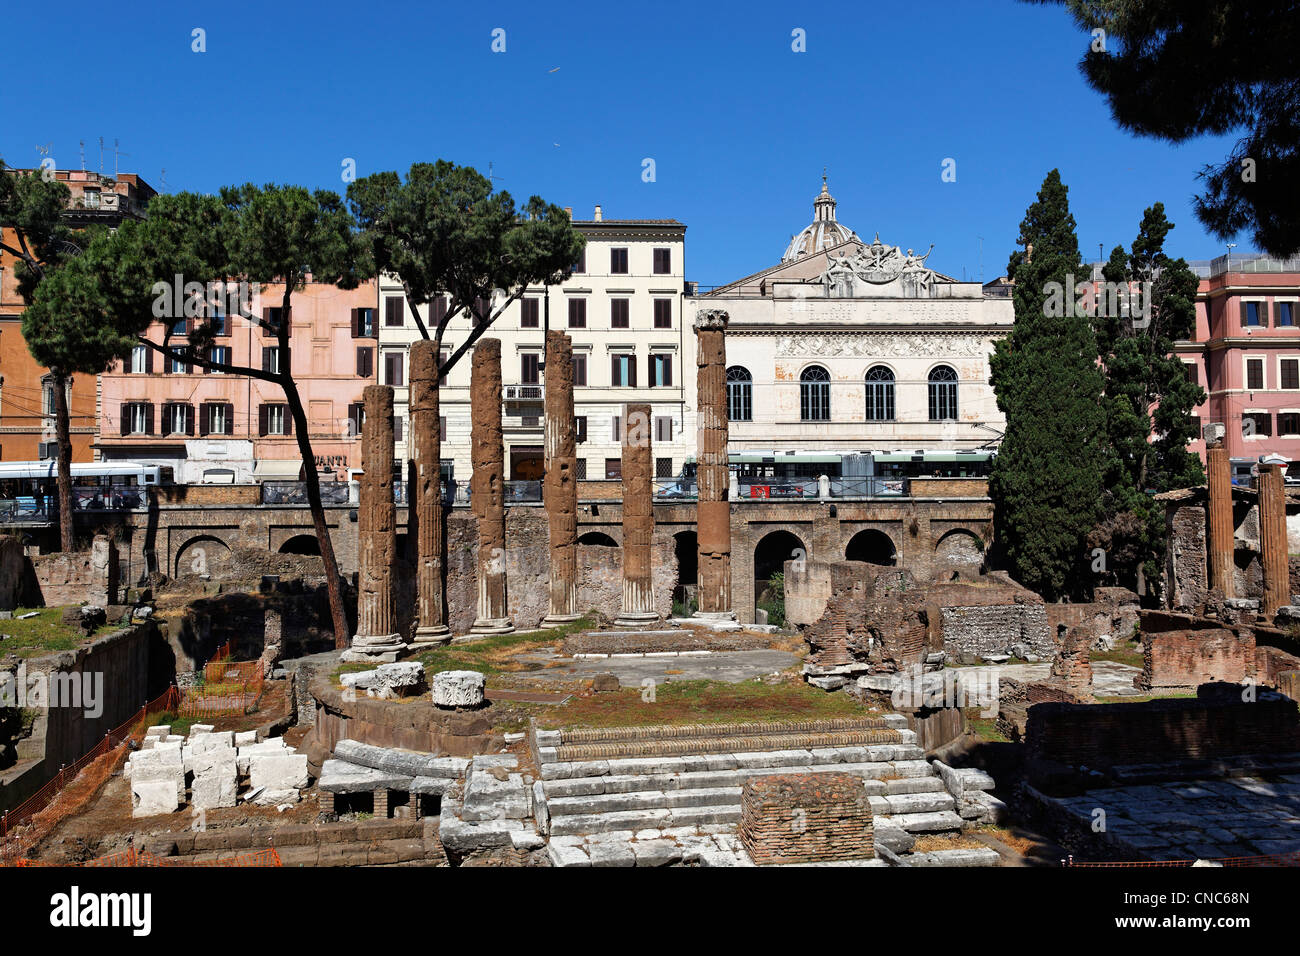 Italy, Lazio, Rome, historical center listed as World Heritage by UNESCO, ruins, Area Sacra di Largo Argentina - Stock Image